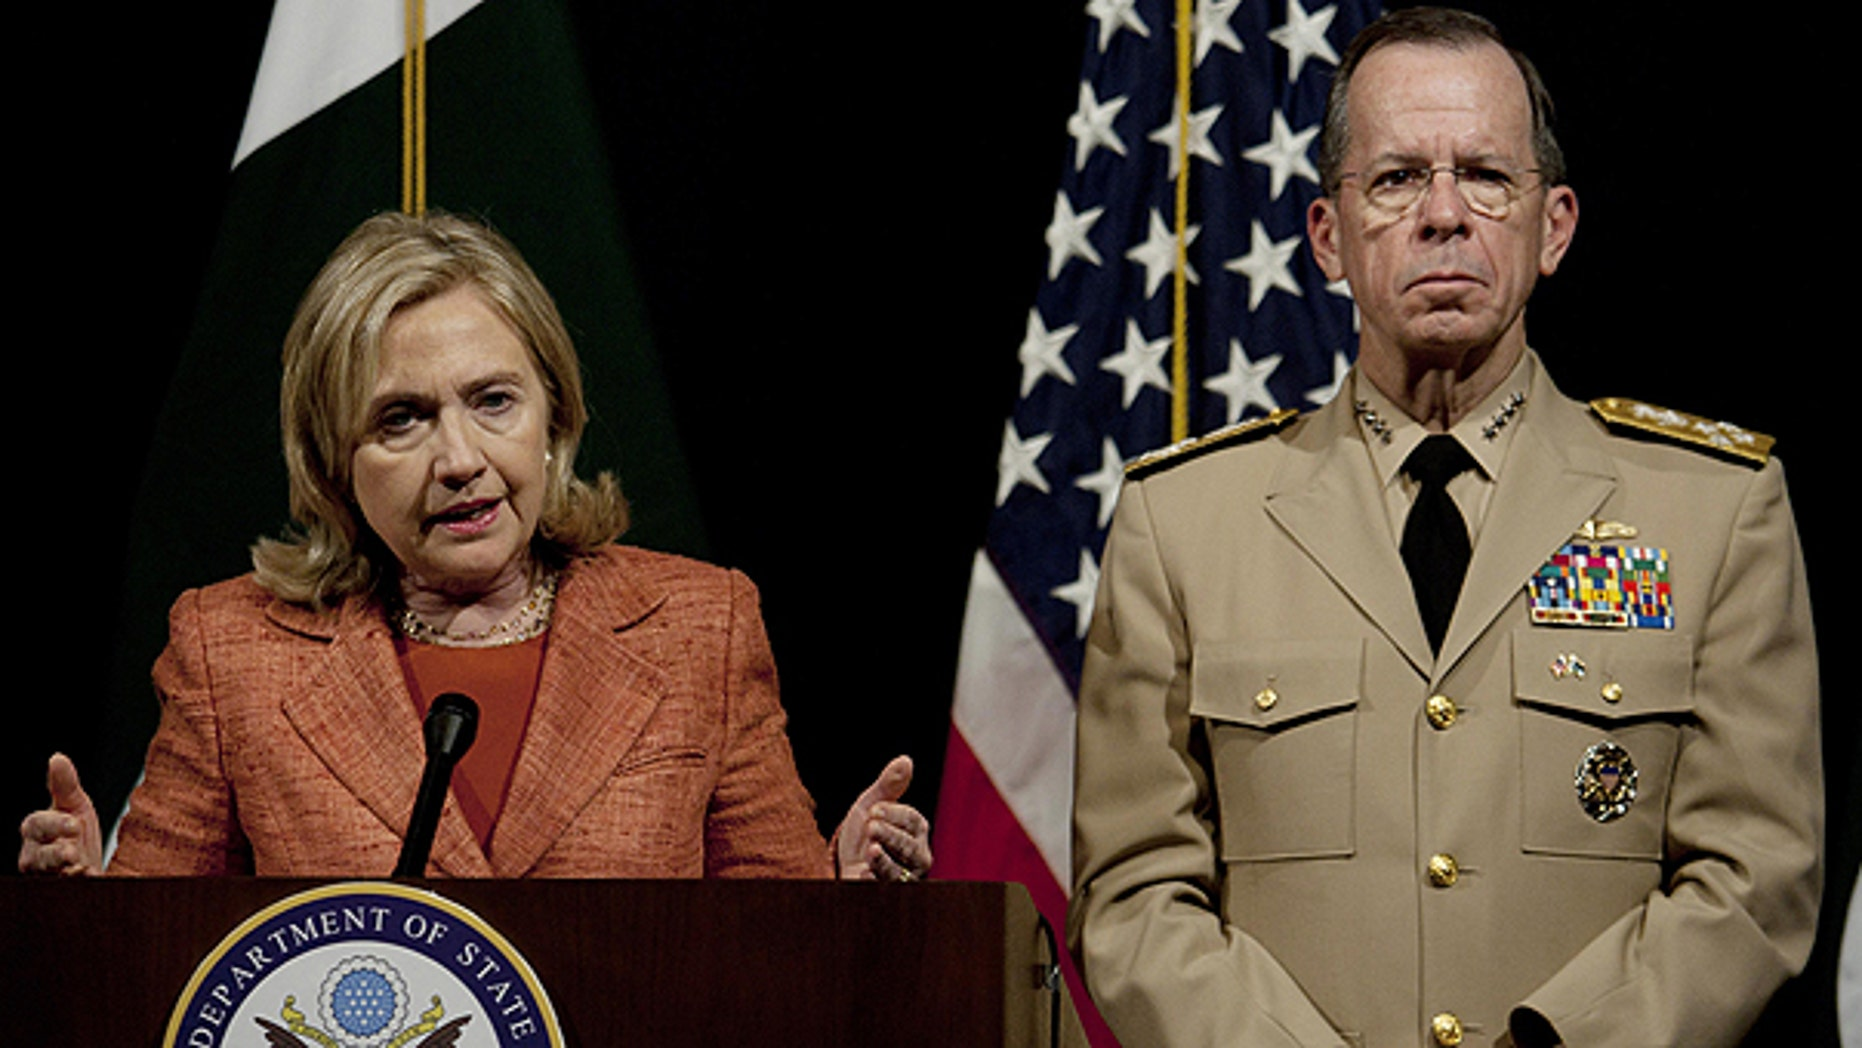 May 27: U.S. Secretary of State Hillary Rodham Clinton addresses a news conference with Adm. Mike Mullen, the chairman of the U.S. Joint Chiefs of Staff at U. S. embassy in Islamabad, Pakistan.